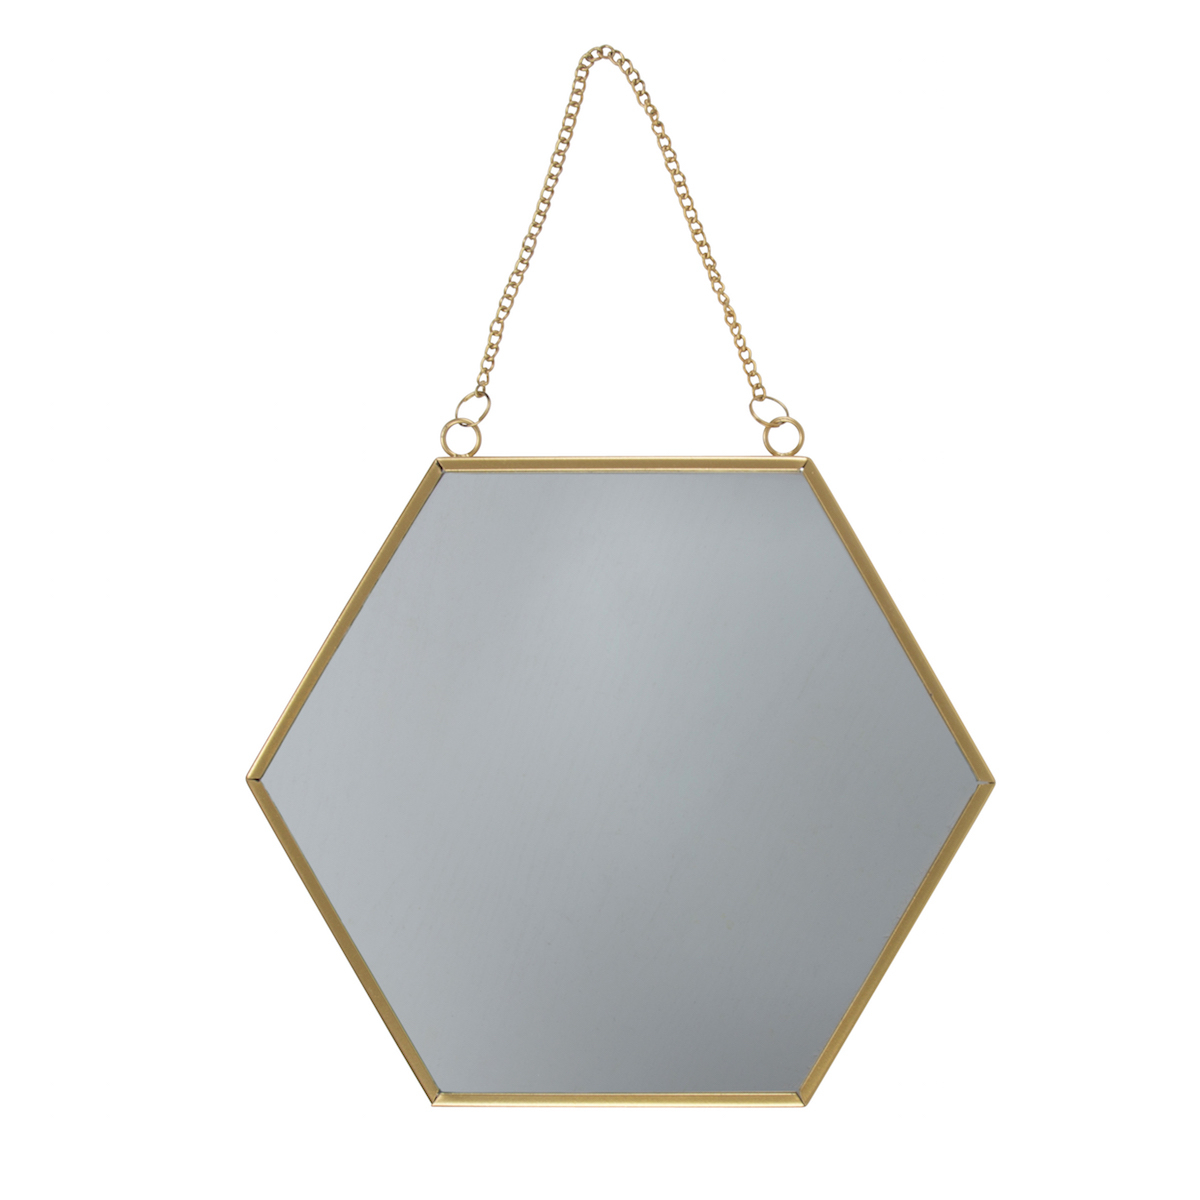 Hexagon Wall Mirrors With Regard To Well Liked Gold Hexagon Wall Mirror (Gallery 20 of 20)